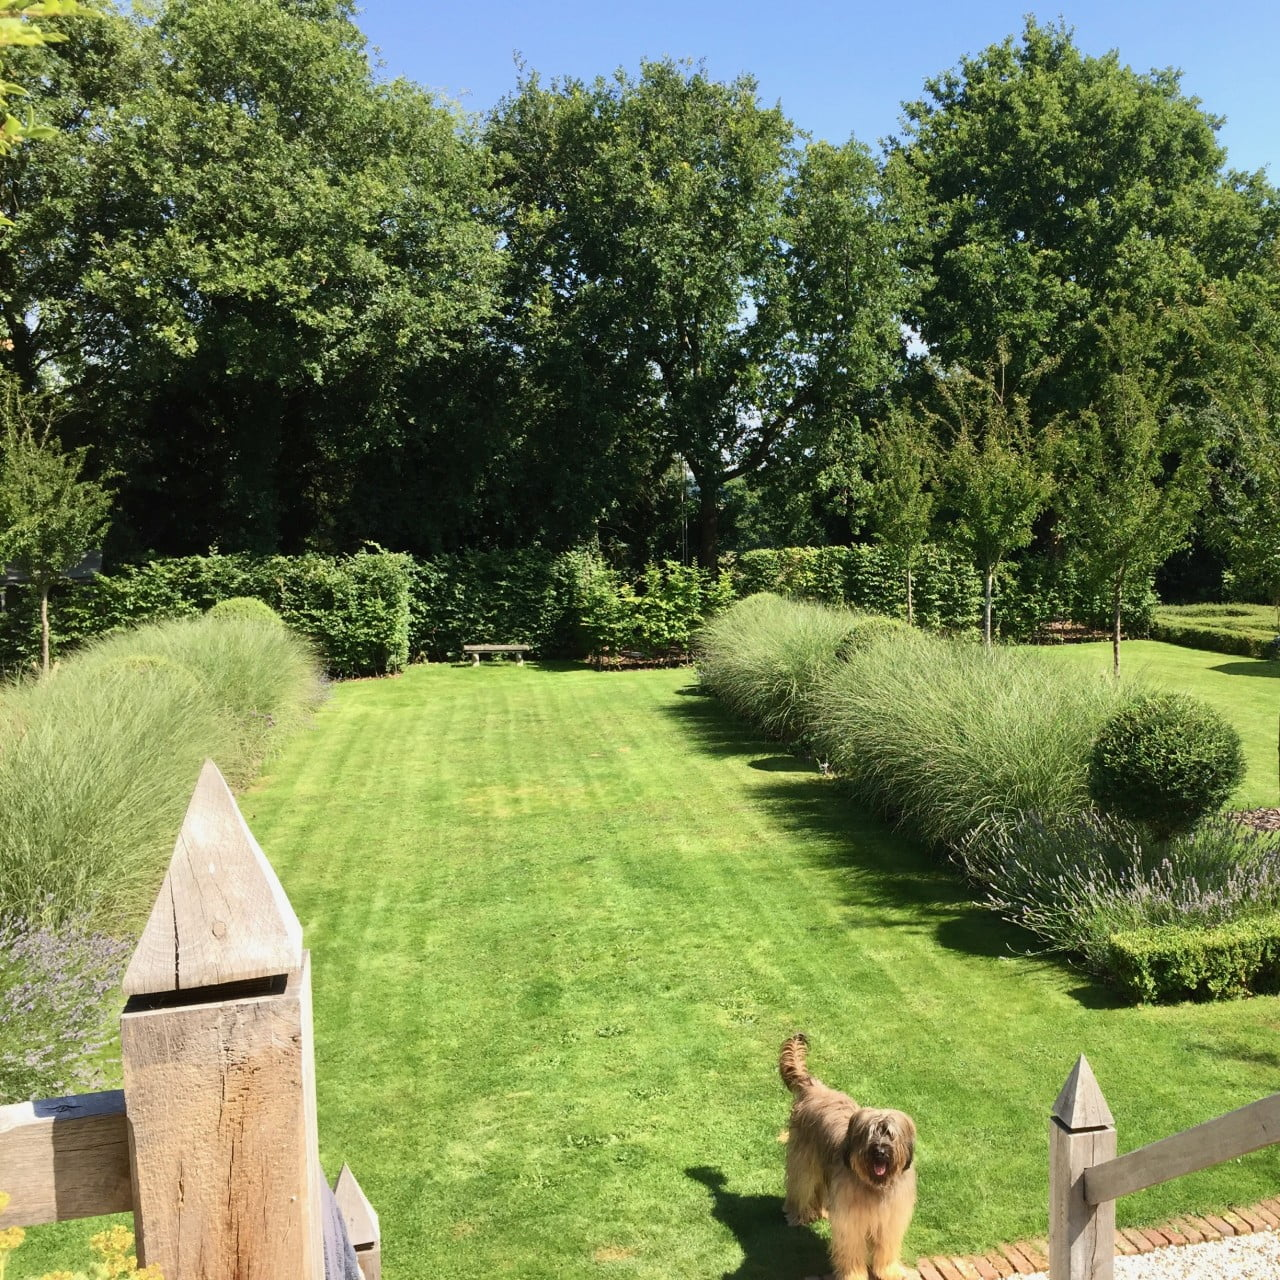 This is my own formal large garden here in Newbury Berkshire. We have lines of cherry trees & formal beds with ornamental grasses & topiary.It is dog friendly with plenty of space to play too